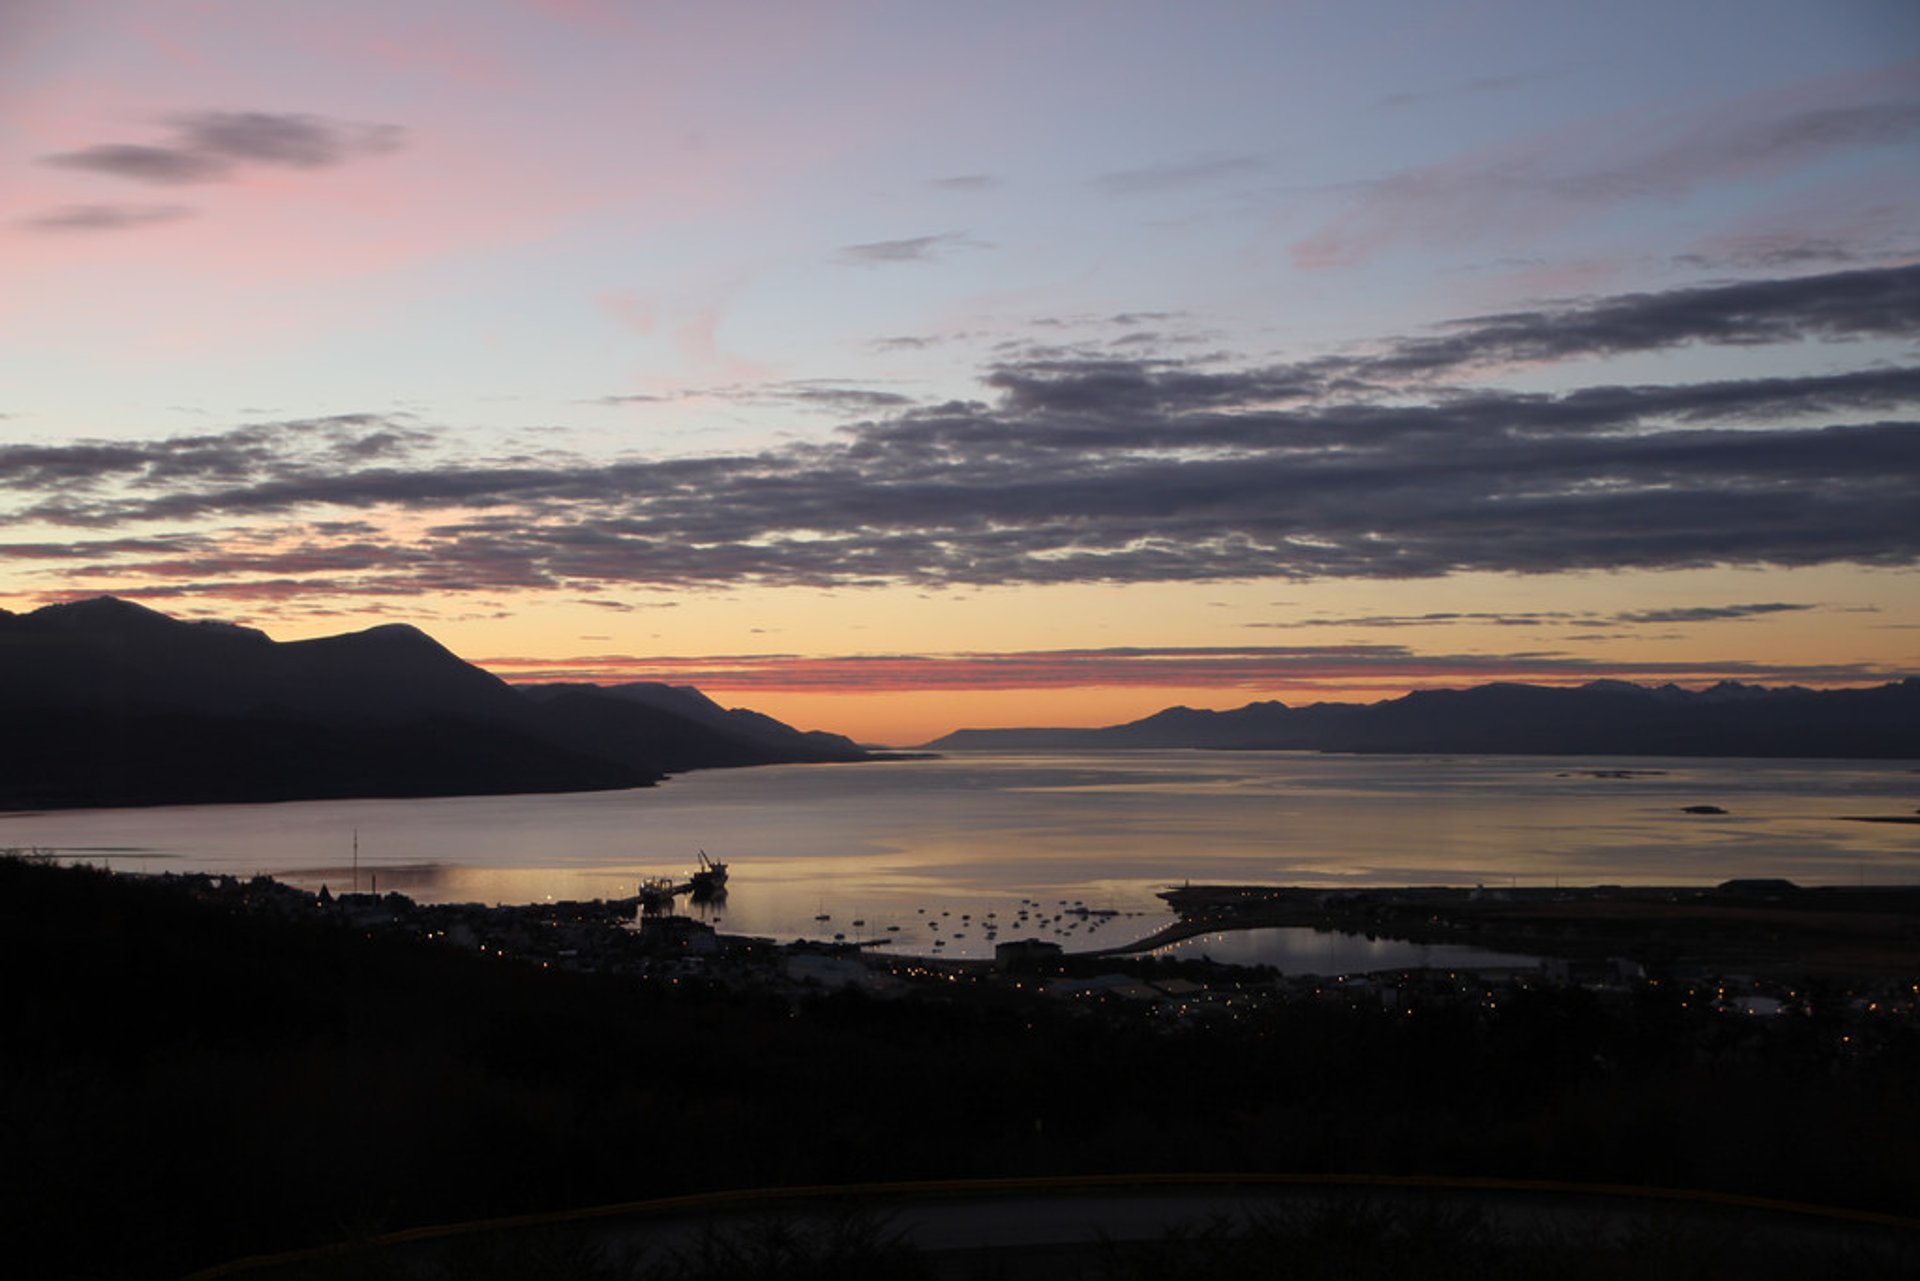 June sunset in Ushuaia 2020